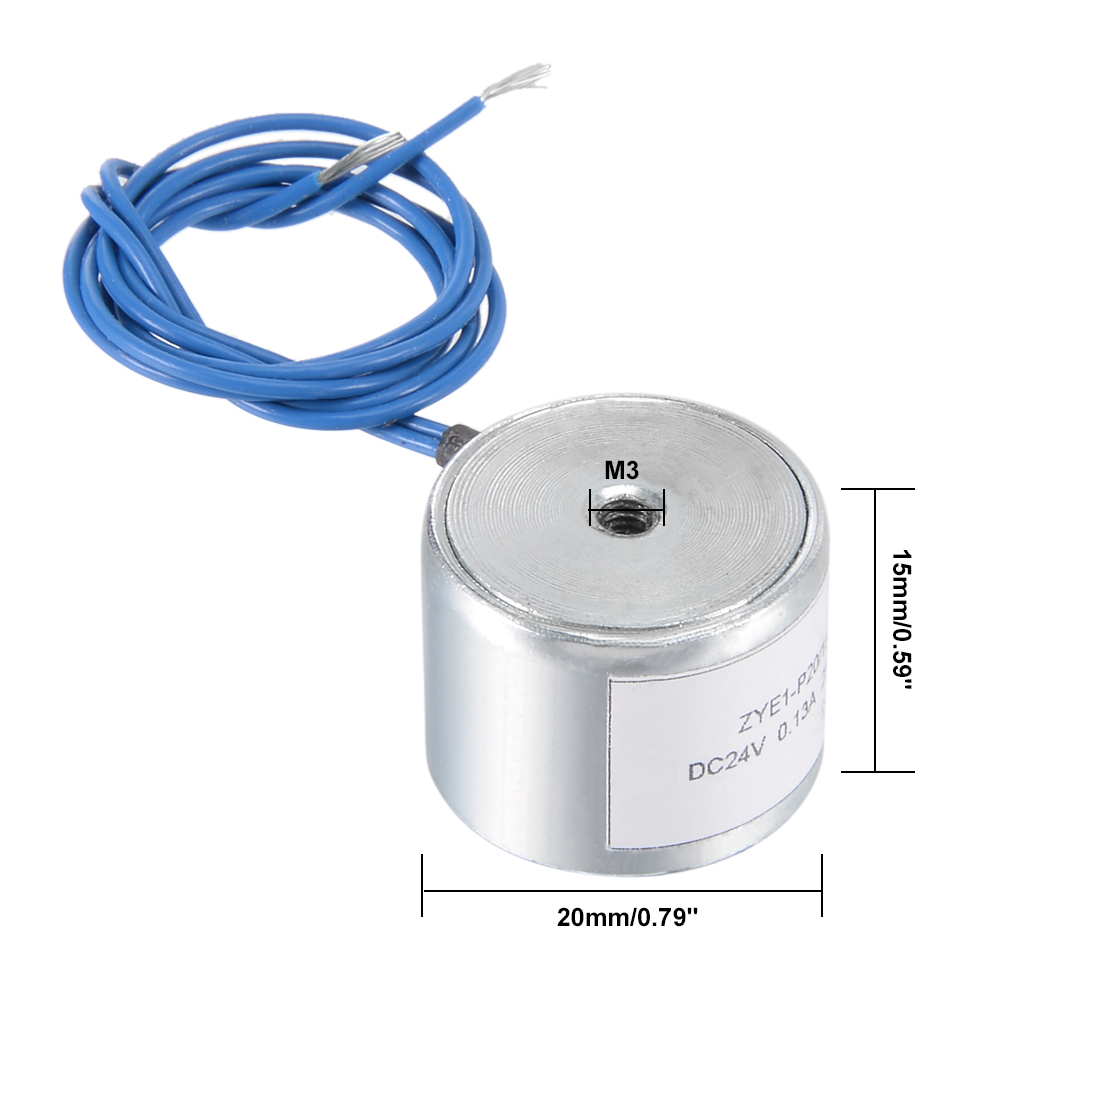 Uxcell 20mm X 15mm DC24V 0.13A 25N Sucking Disc Solenoid Lift Holding Electromagnet